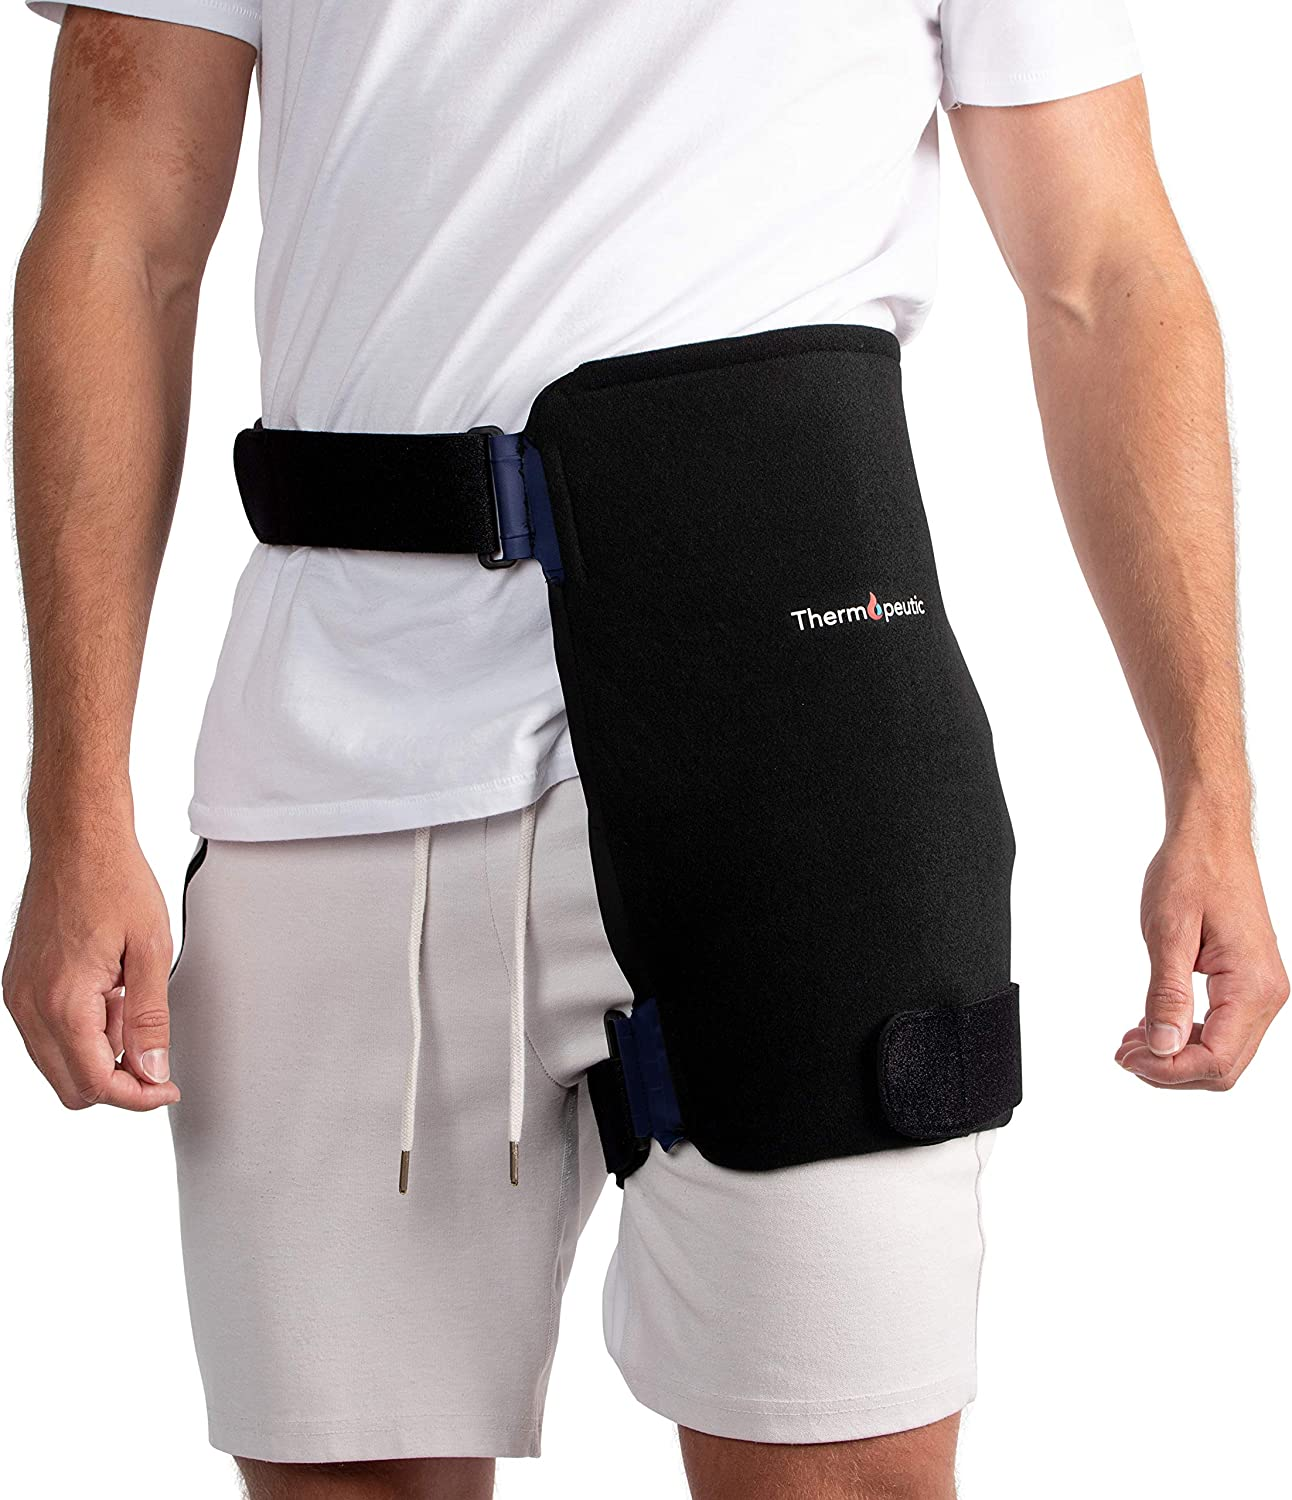 hip ice pack